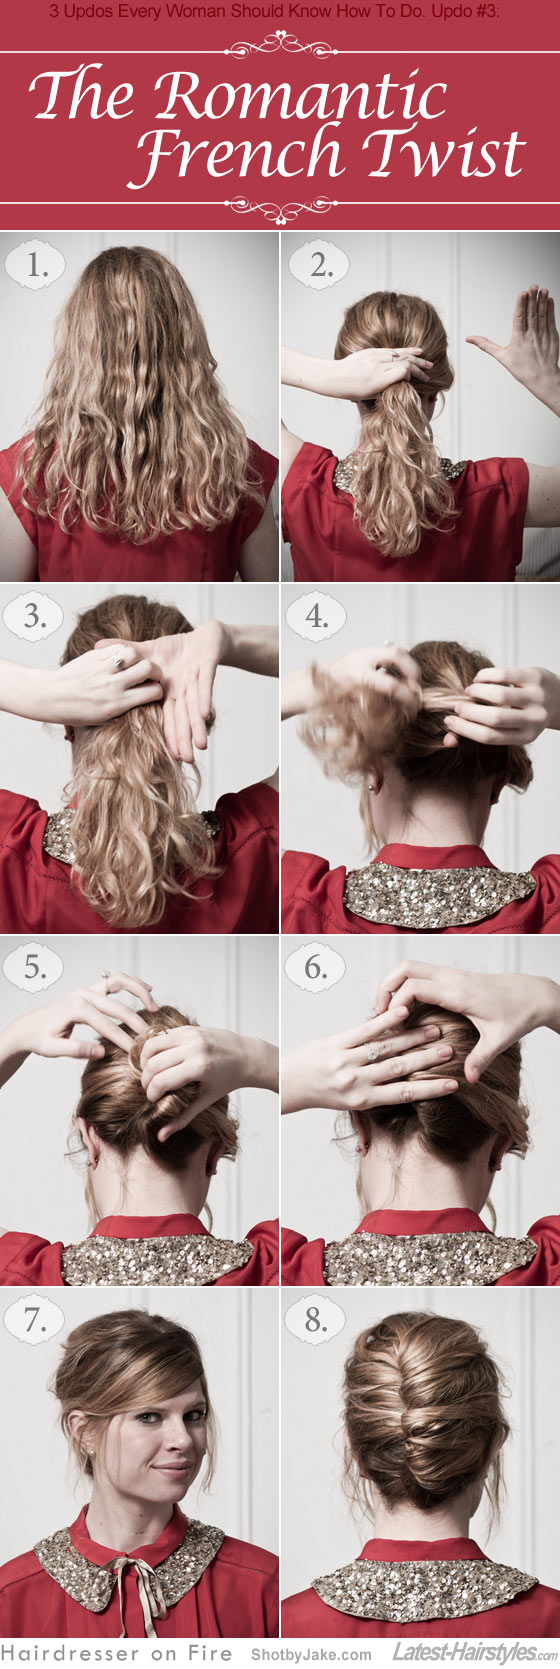 22 Gorgeous Hairstyle Ideas and Tutorials for New Year's Eve (19)